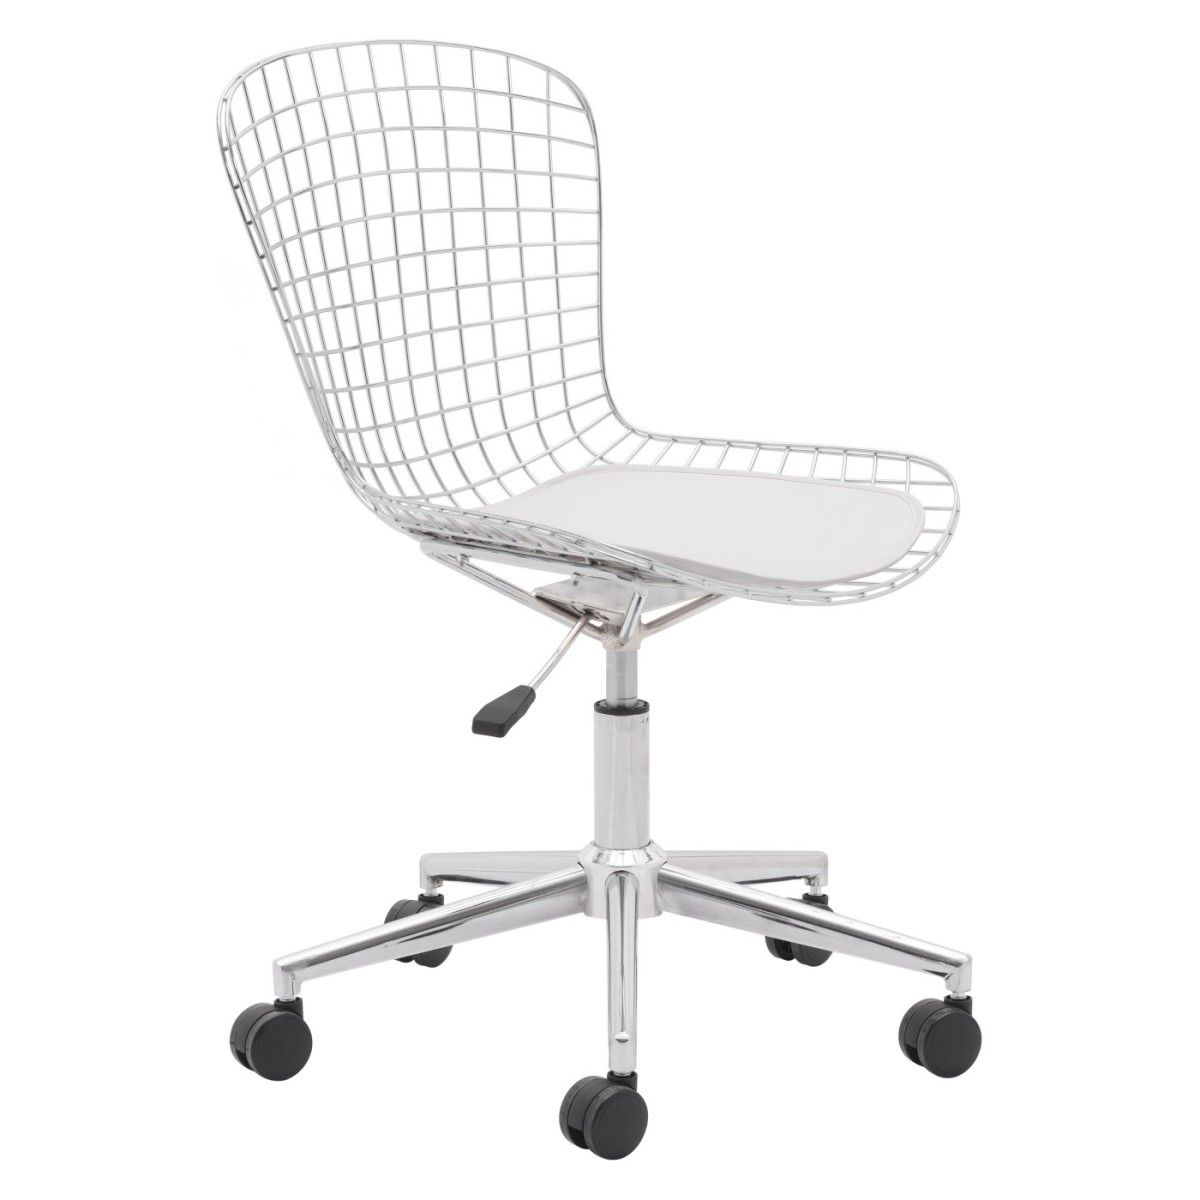 target grid desk chair  Modern office chair, Office chair, White